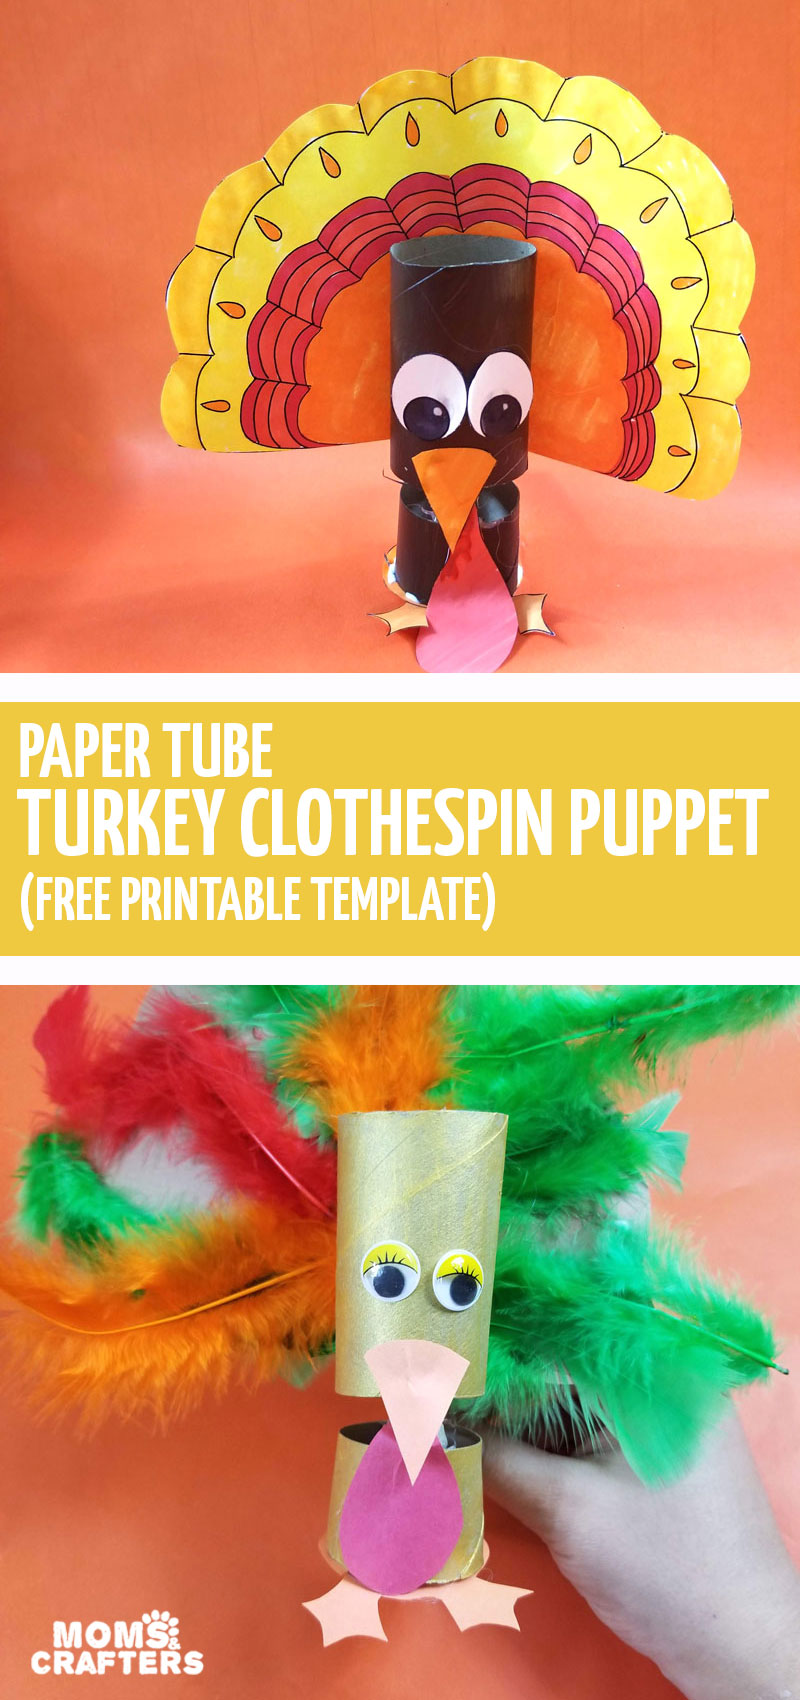 Make your own turkey puppet with the free printable template. Color it in or craft it using toilet paper rolls, clothespins, and feathers for an adorable Thanksgiving craft for kids.